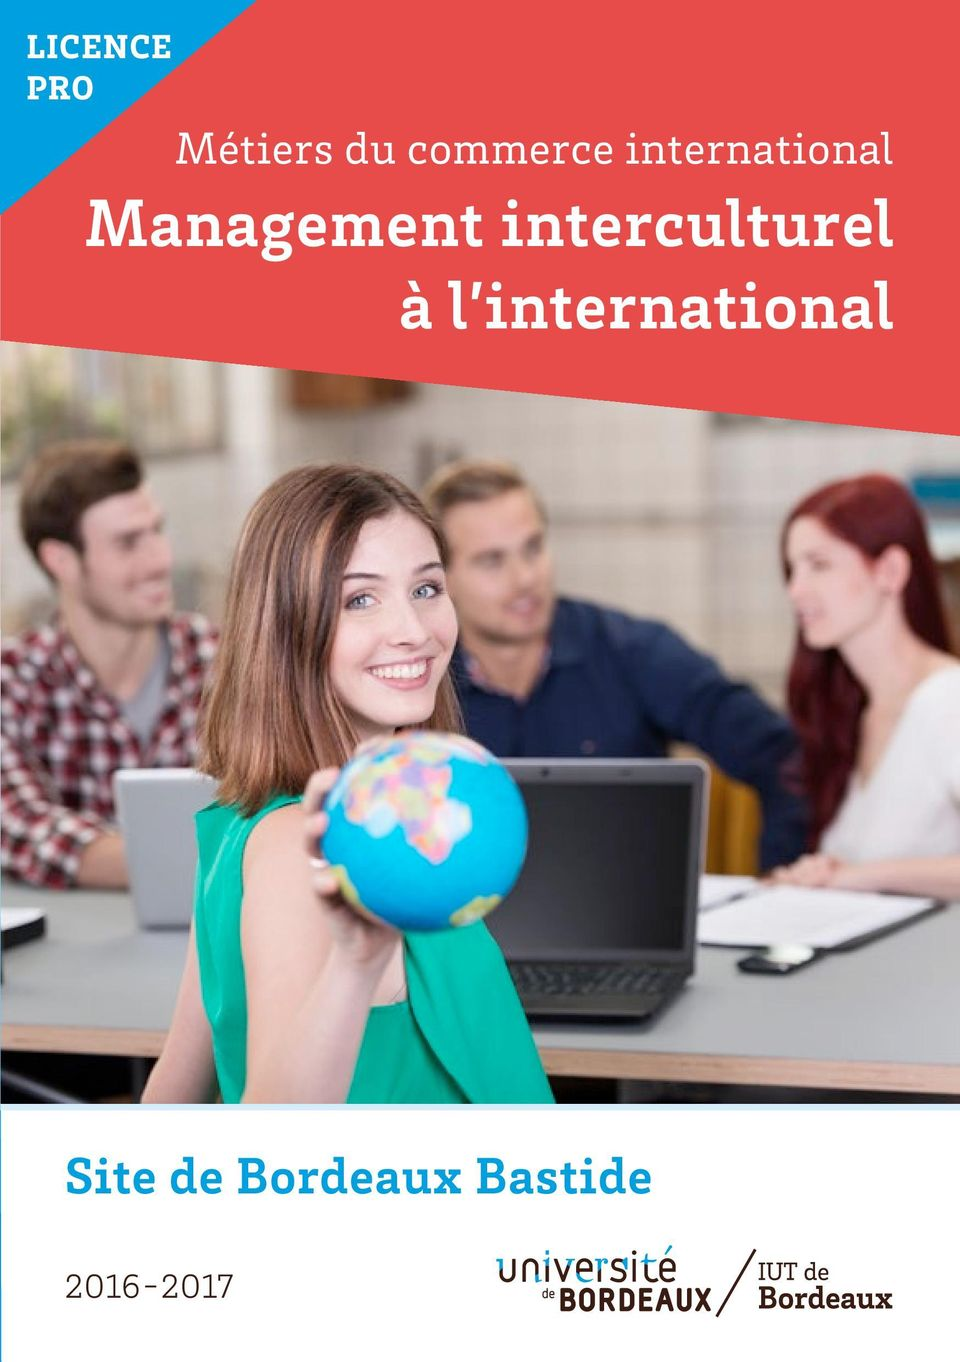 Management interculturel à l